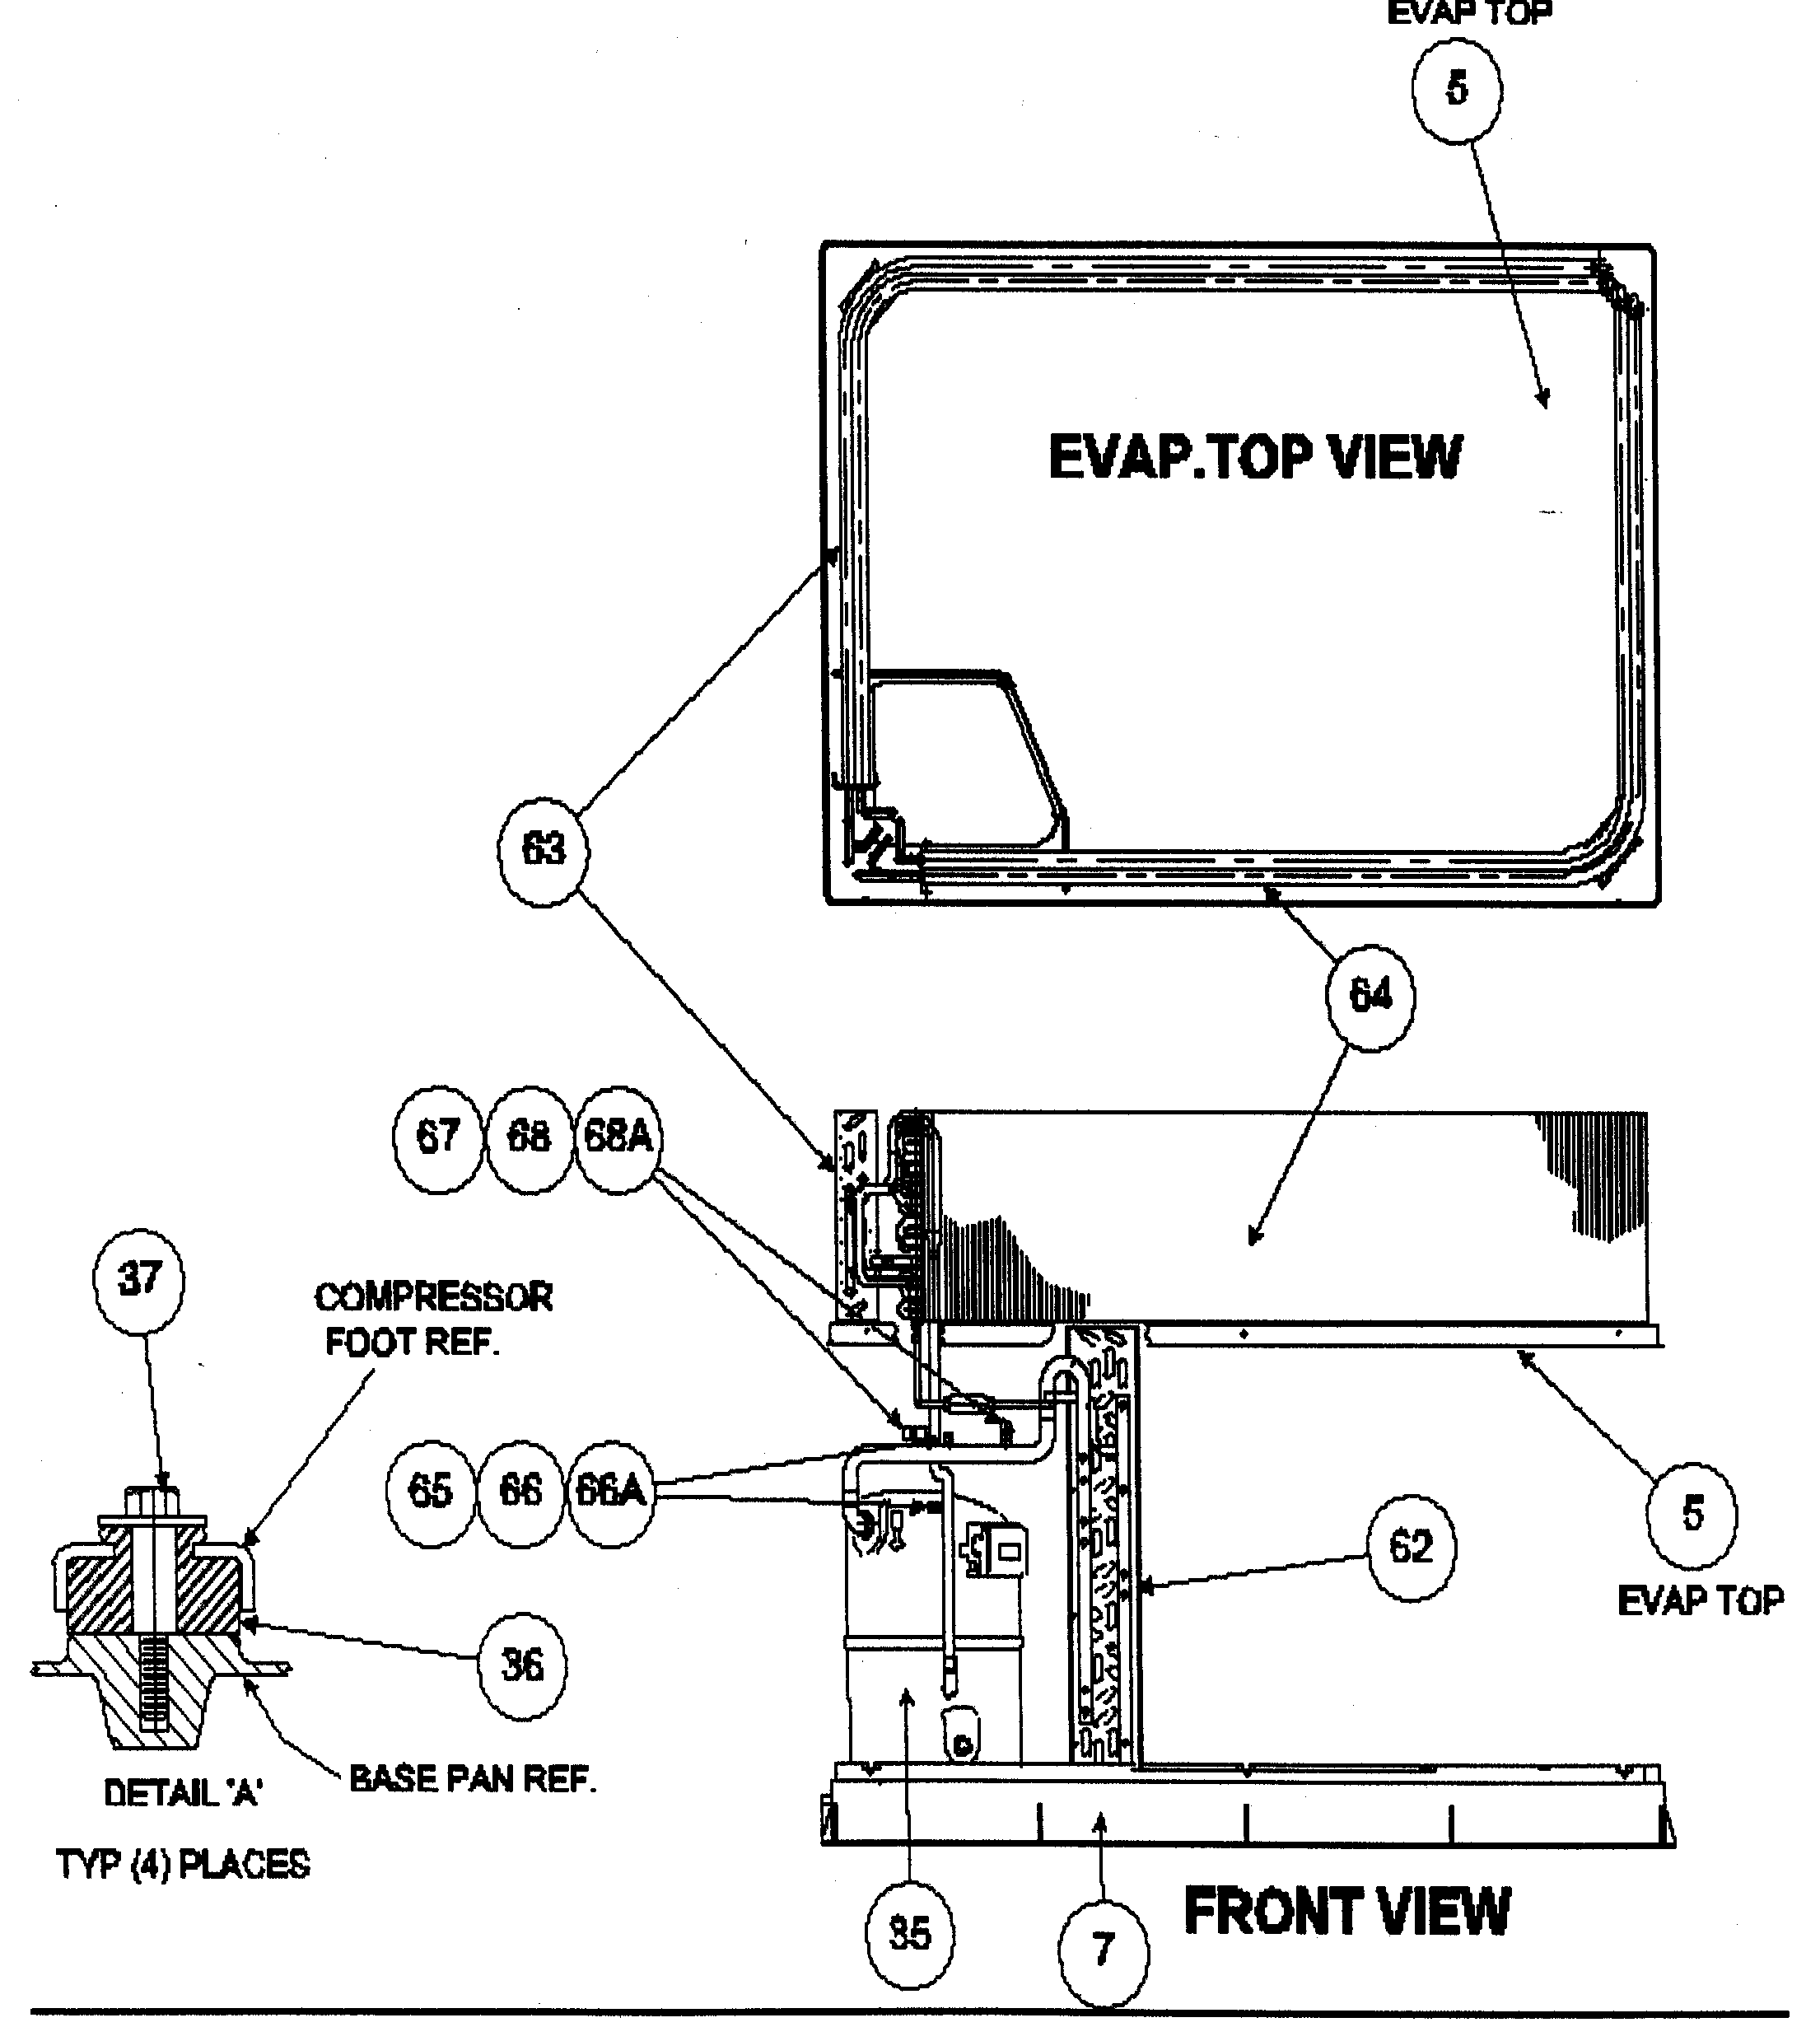 GAS SECTION Diagram & Parts List for Model